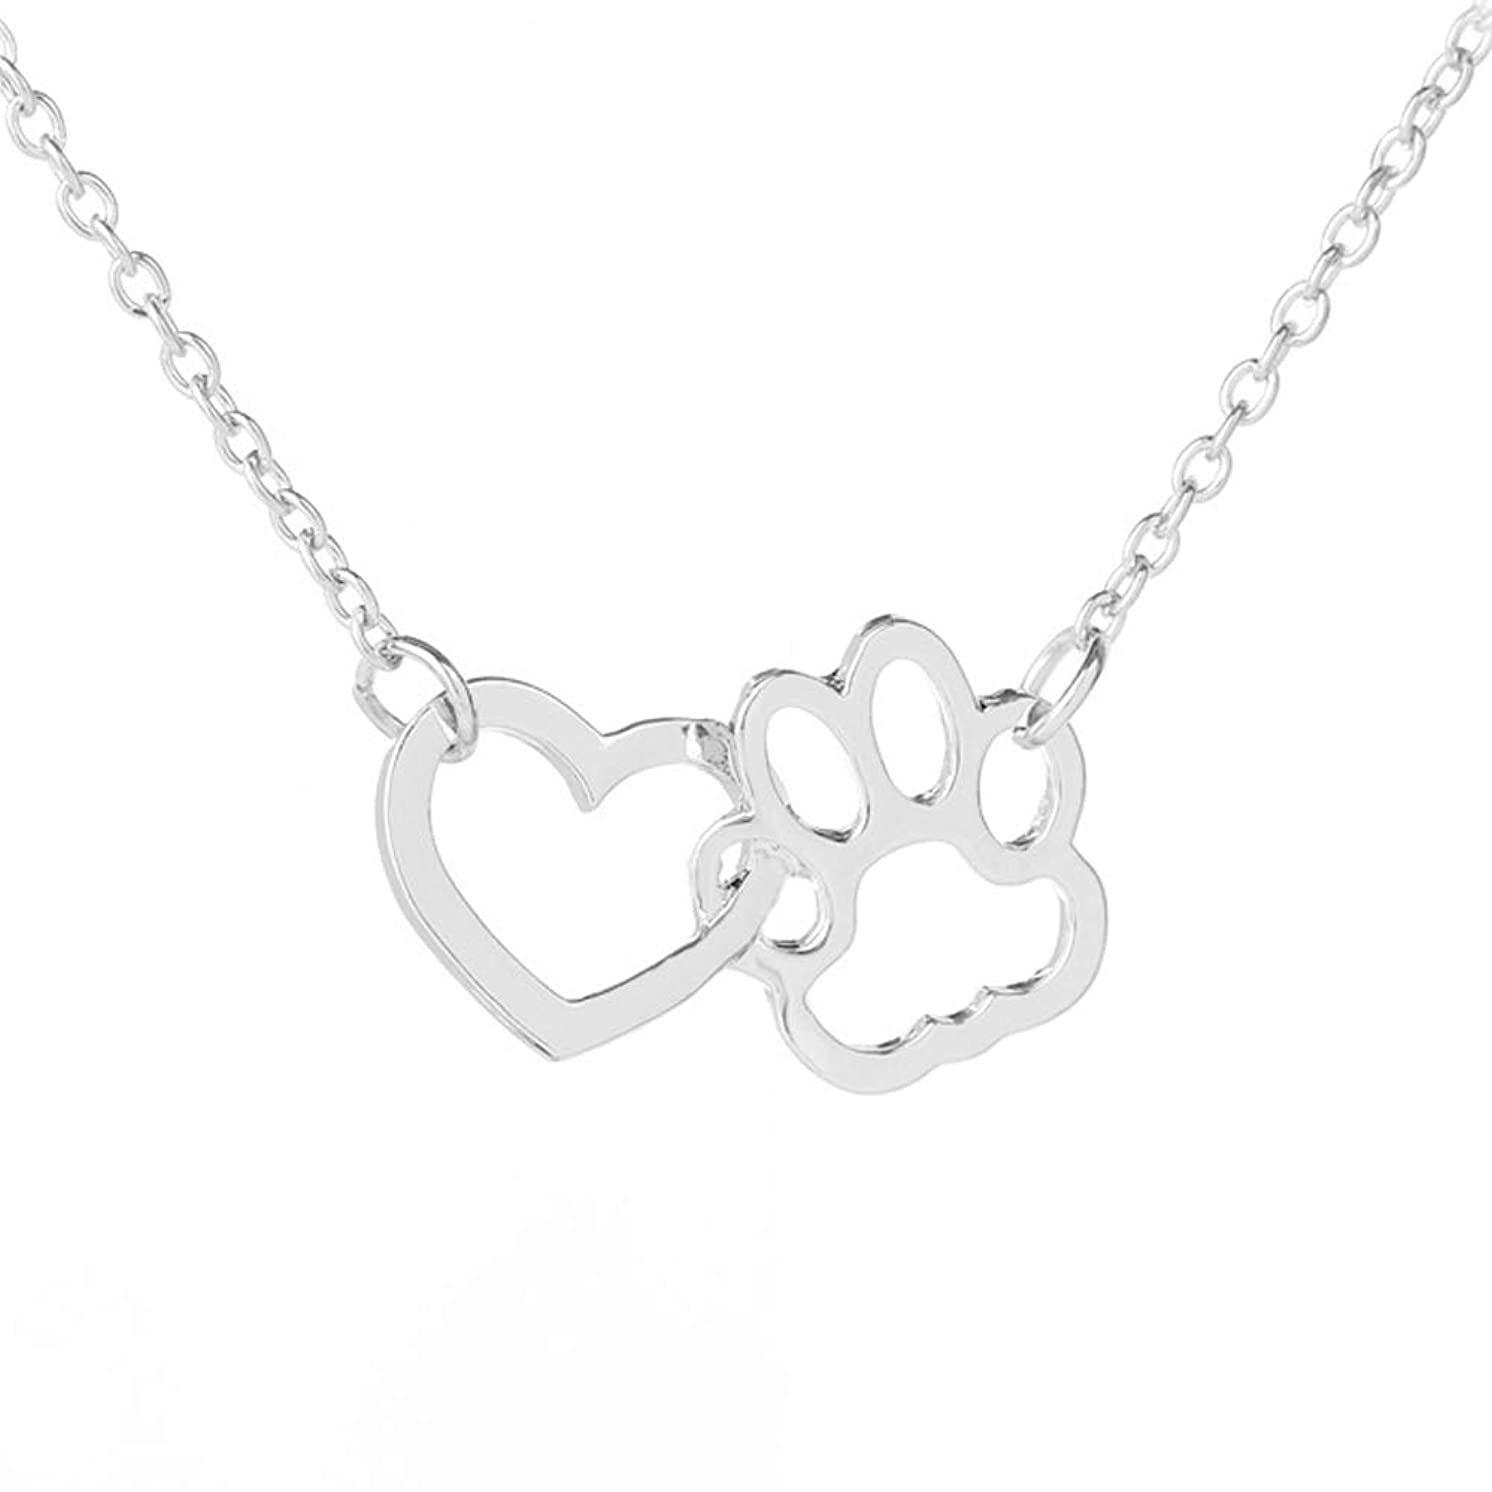 NC103 Cute Sliver Little Love Heart Dog Paw Charm Pendant Necklace